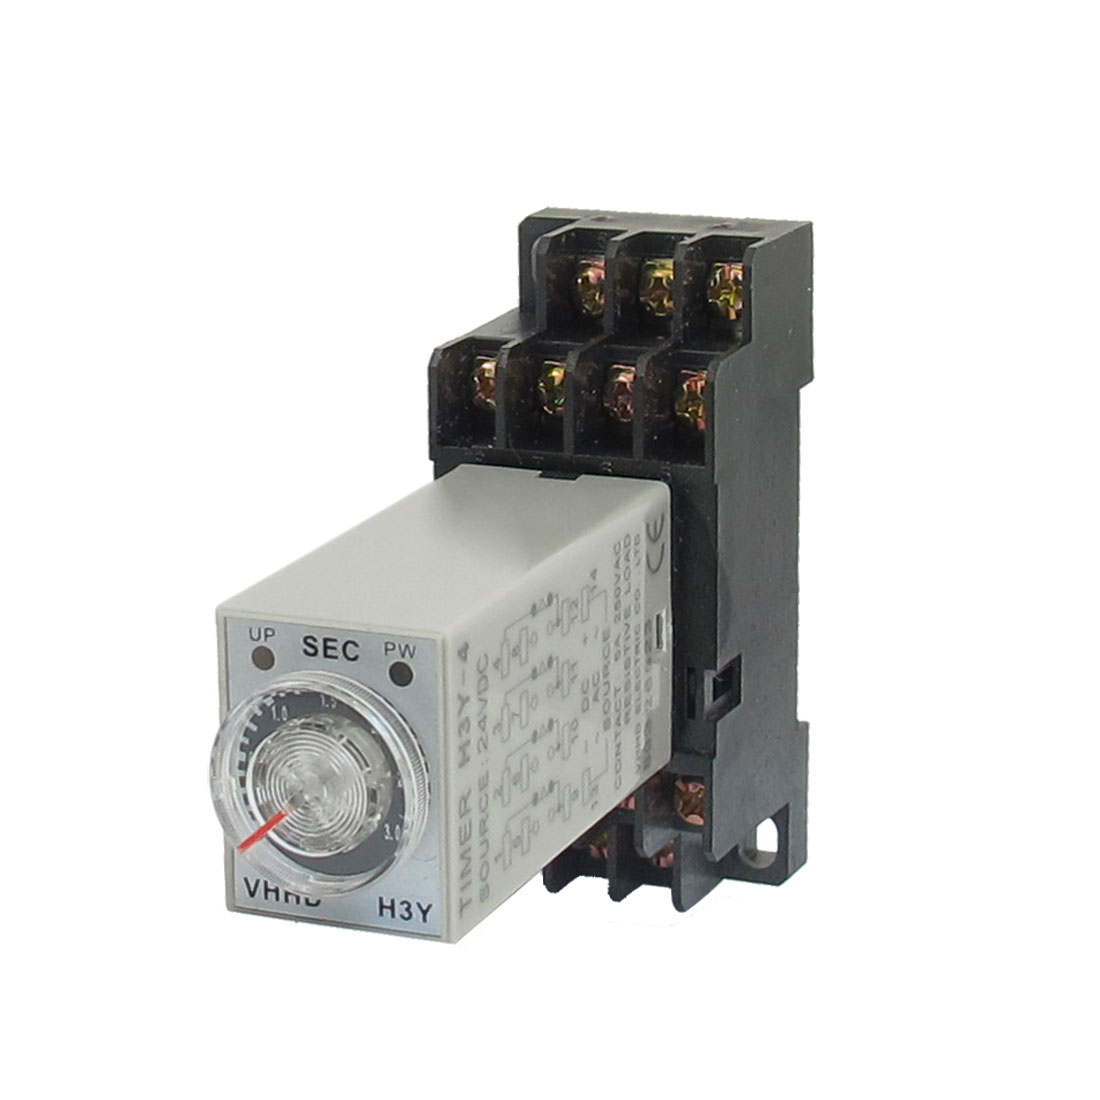 H3Y-4 24VDC 4PDT 3 Seconds Timer Delay 3.5mm DIN Rail Time Relay w Base